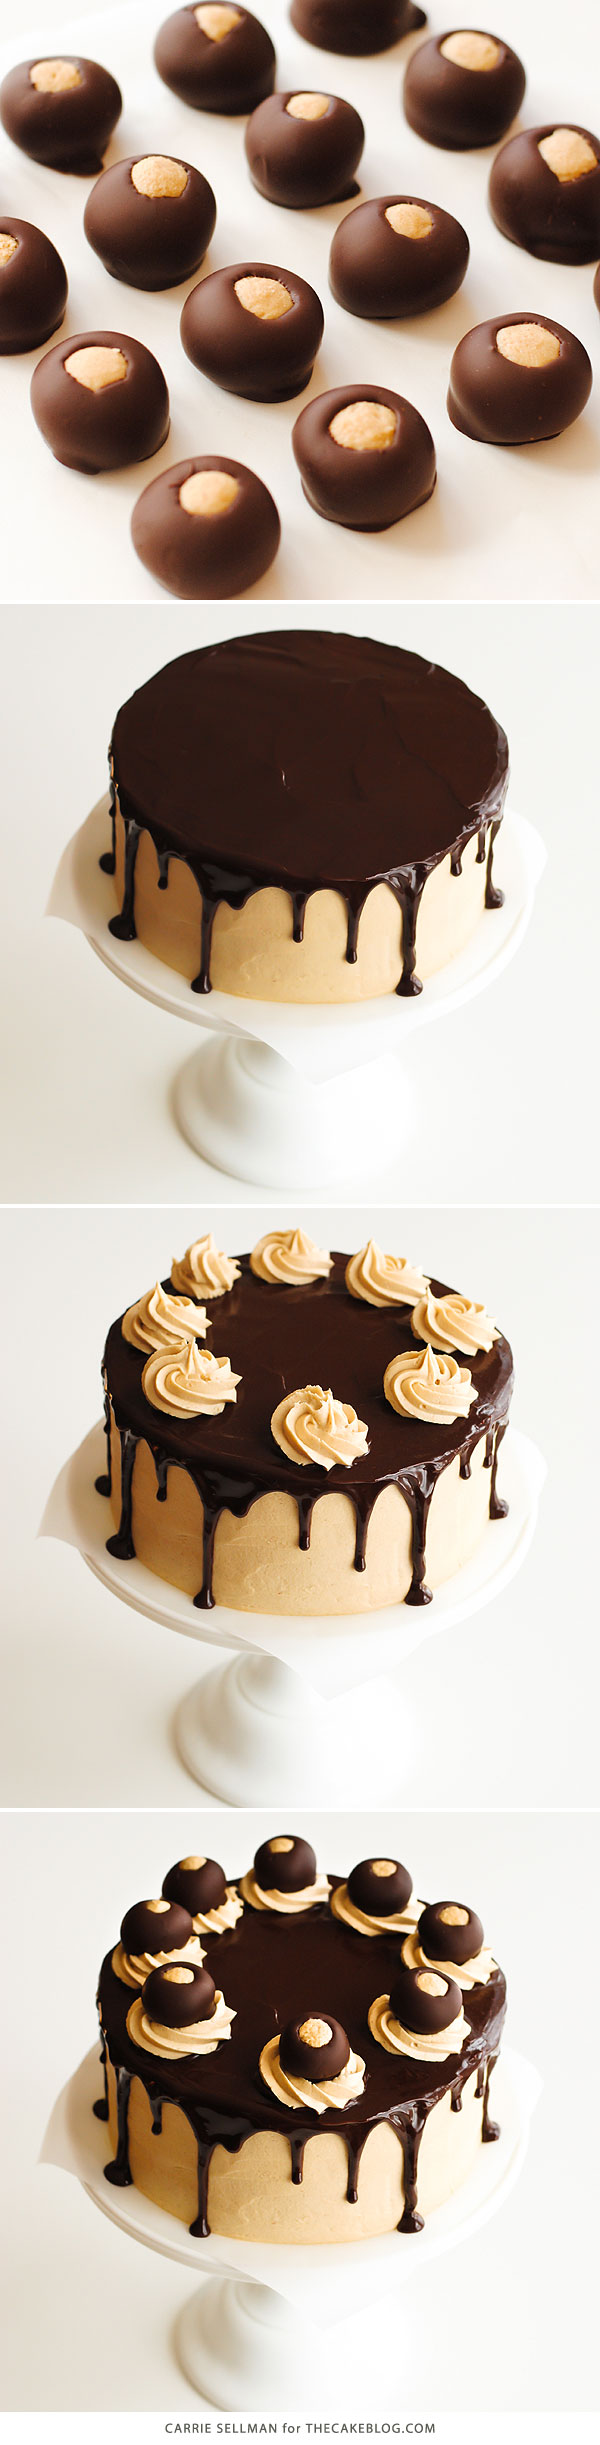 Chocolate Peanut Butter Cake - moist chocolate cake paired with peanut butter frosting and filling, topped with drippy chocolate ganache and homemade peanut butter balls, aka buckeyes | Carrie Sellman for TheCakeBlog.com